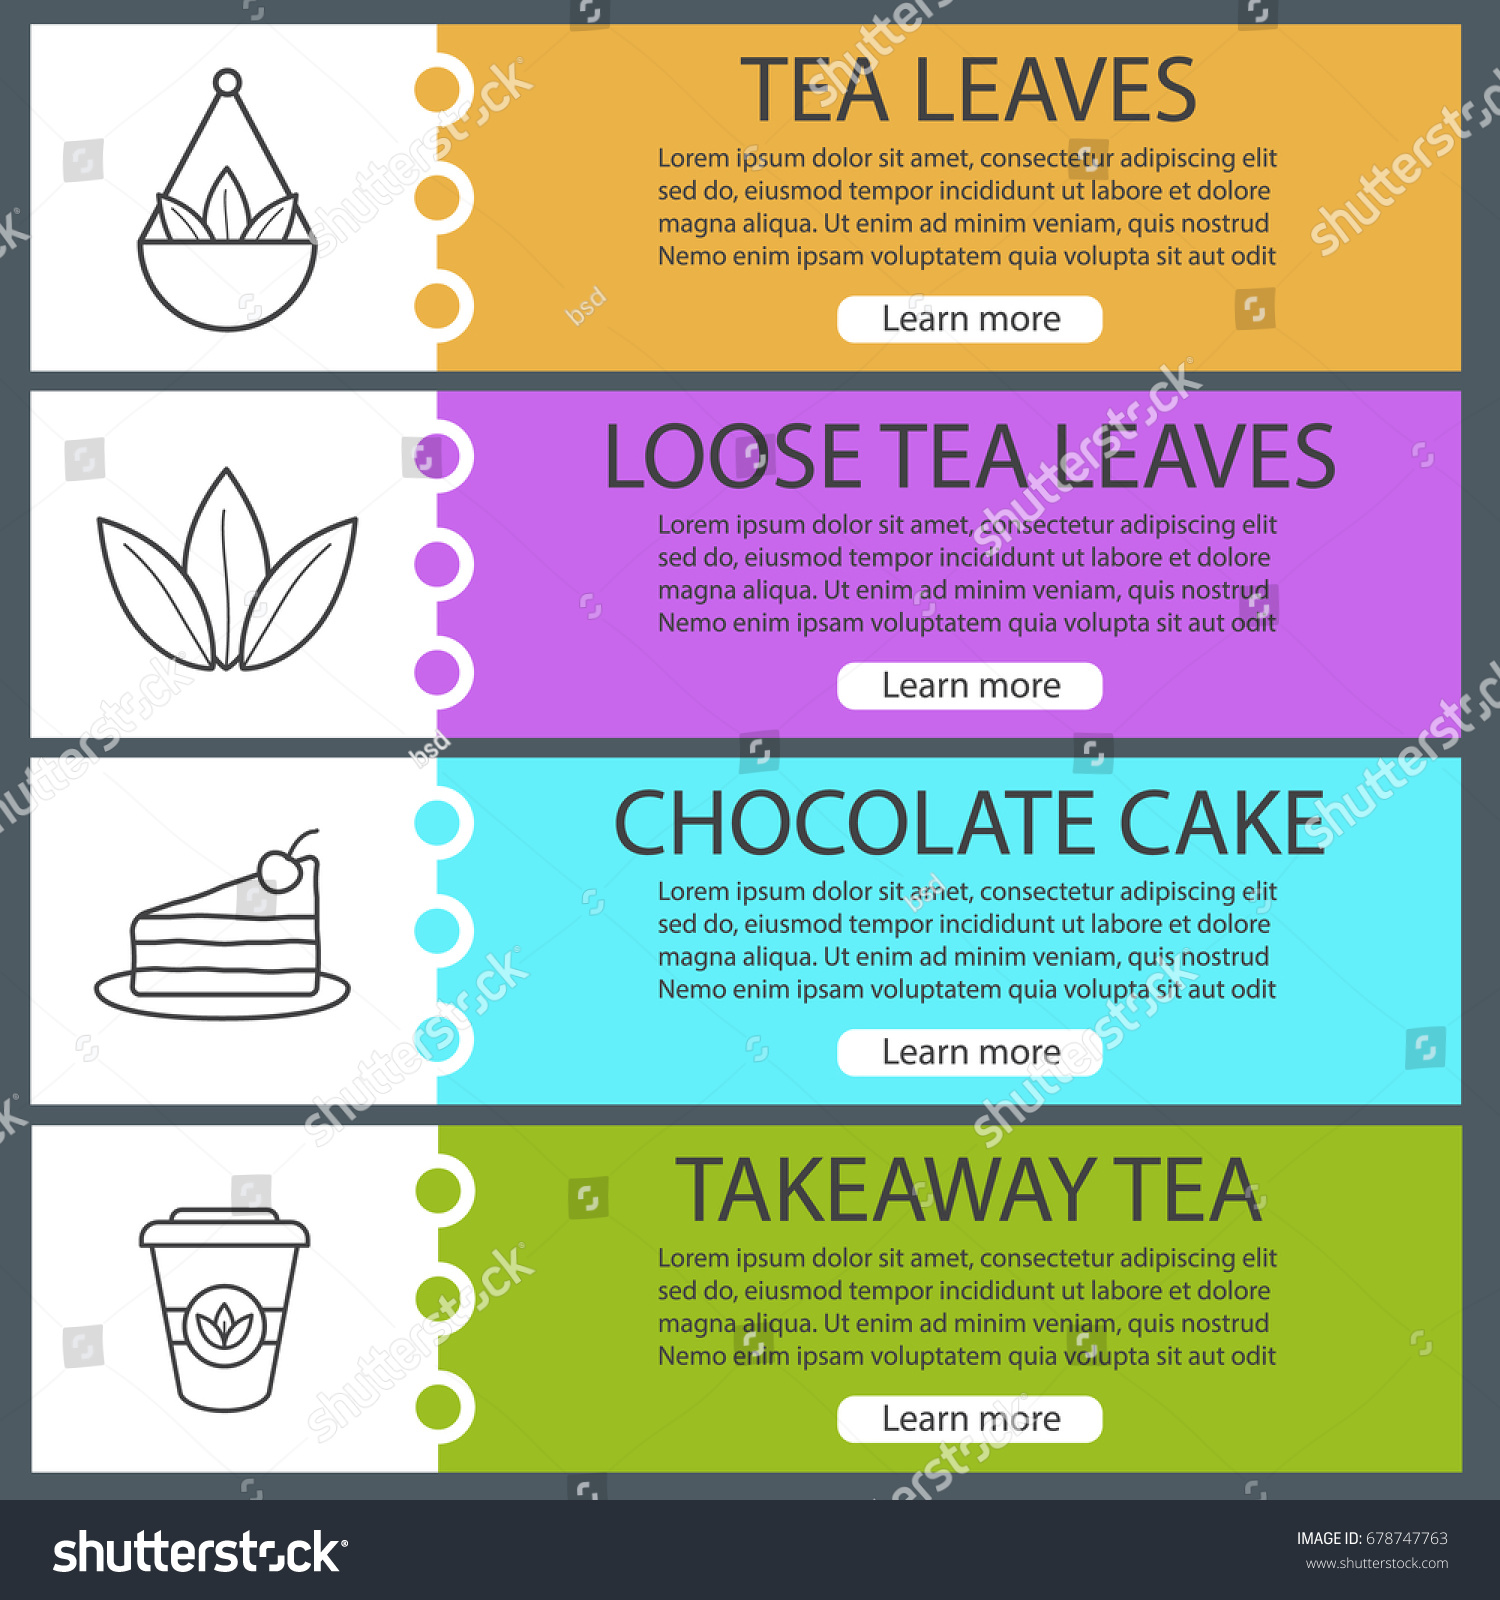 loose leaf paper template bank reference letter template loose leaf paper template xat essay writing word limit sample of stock vector tea web banner templates set loose leaves in bulk chocolate cake takeaway